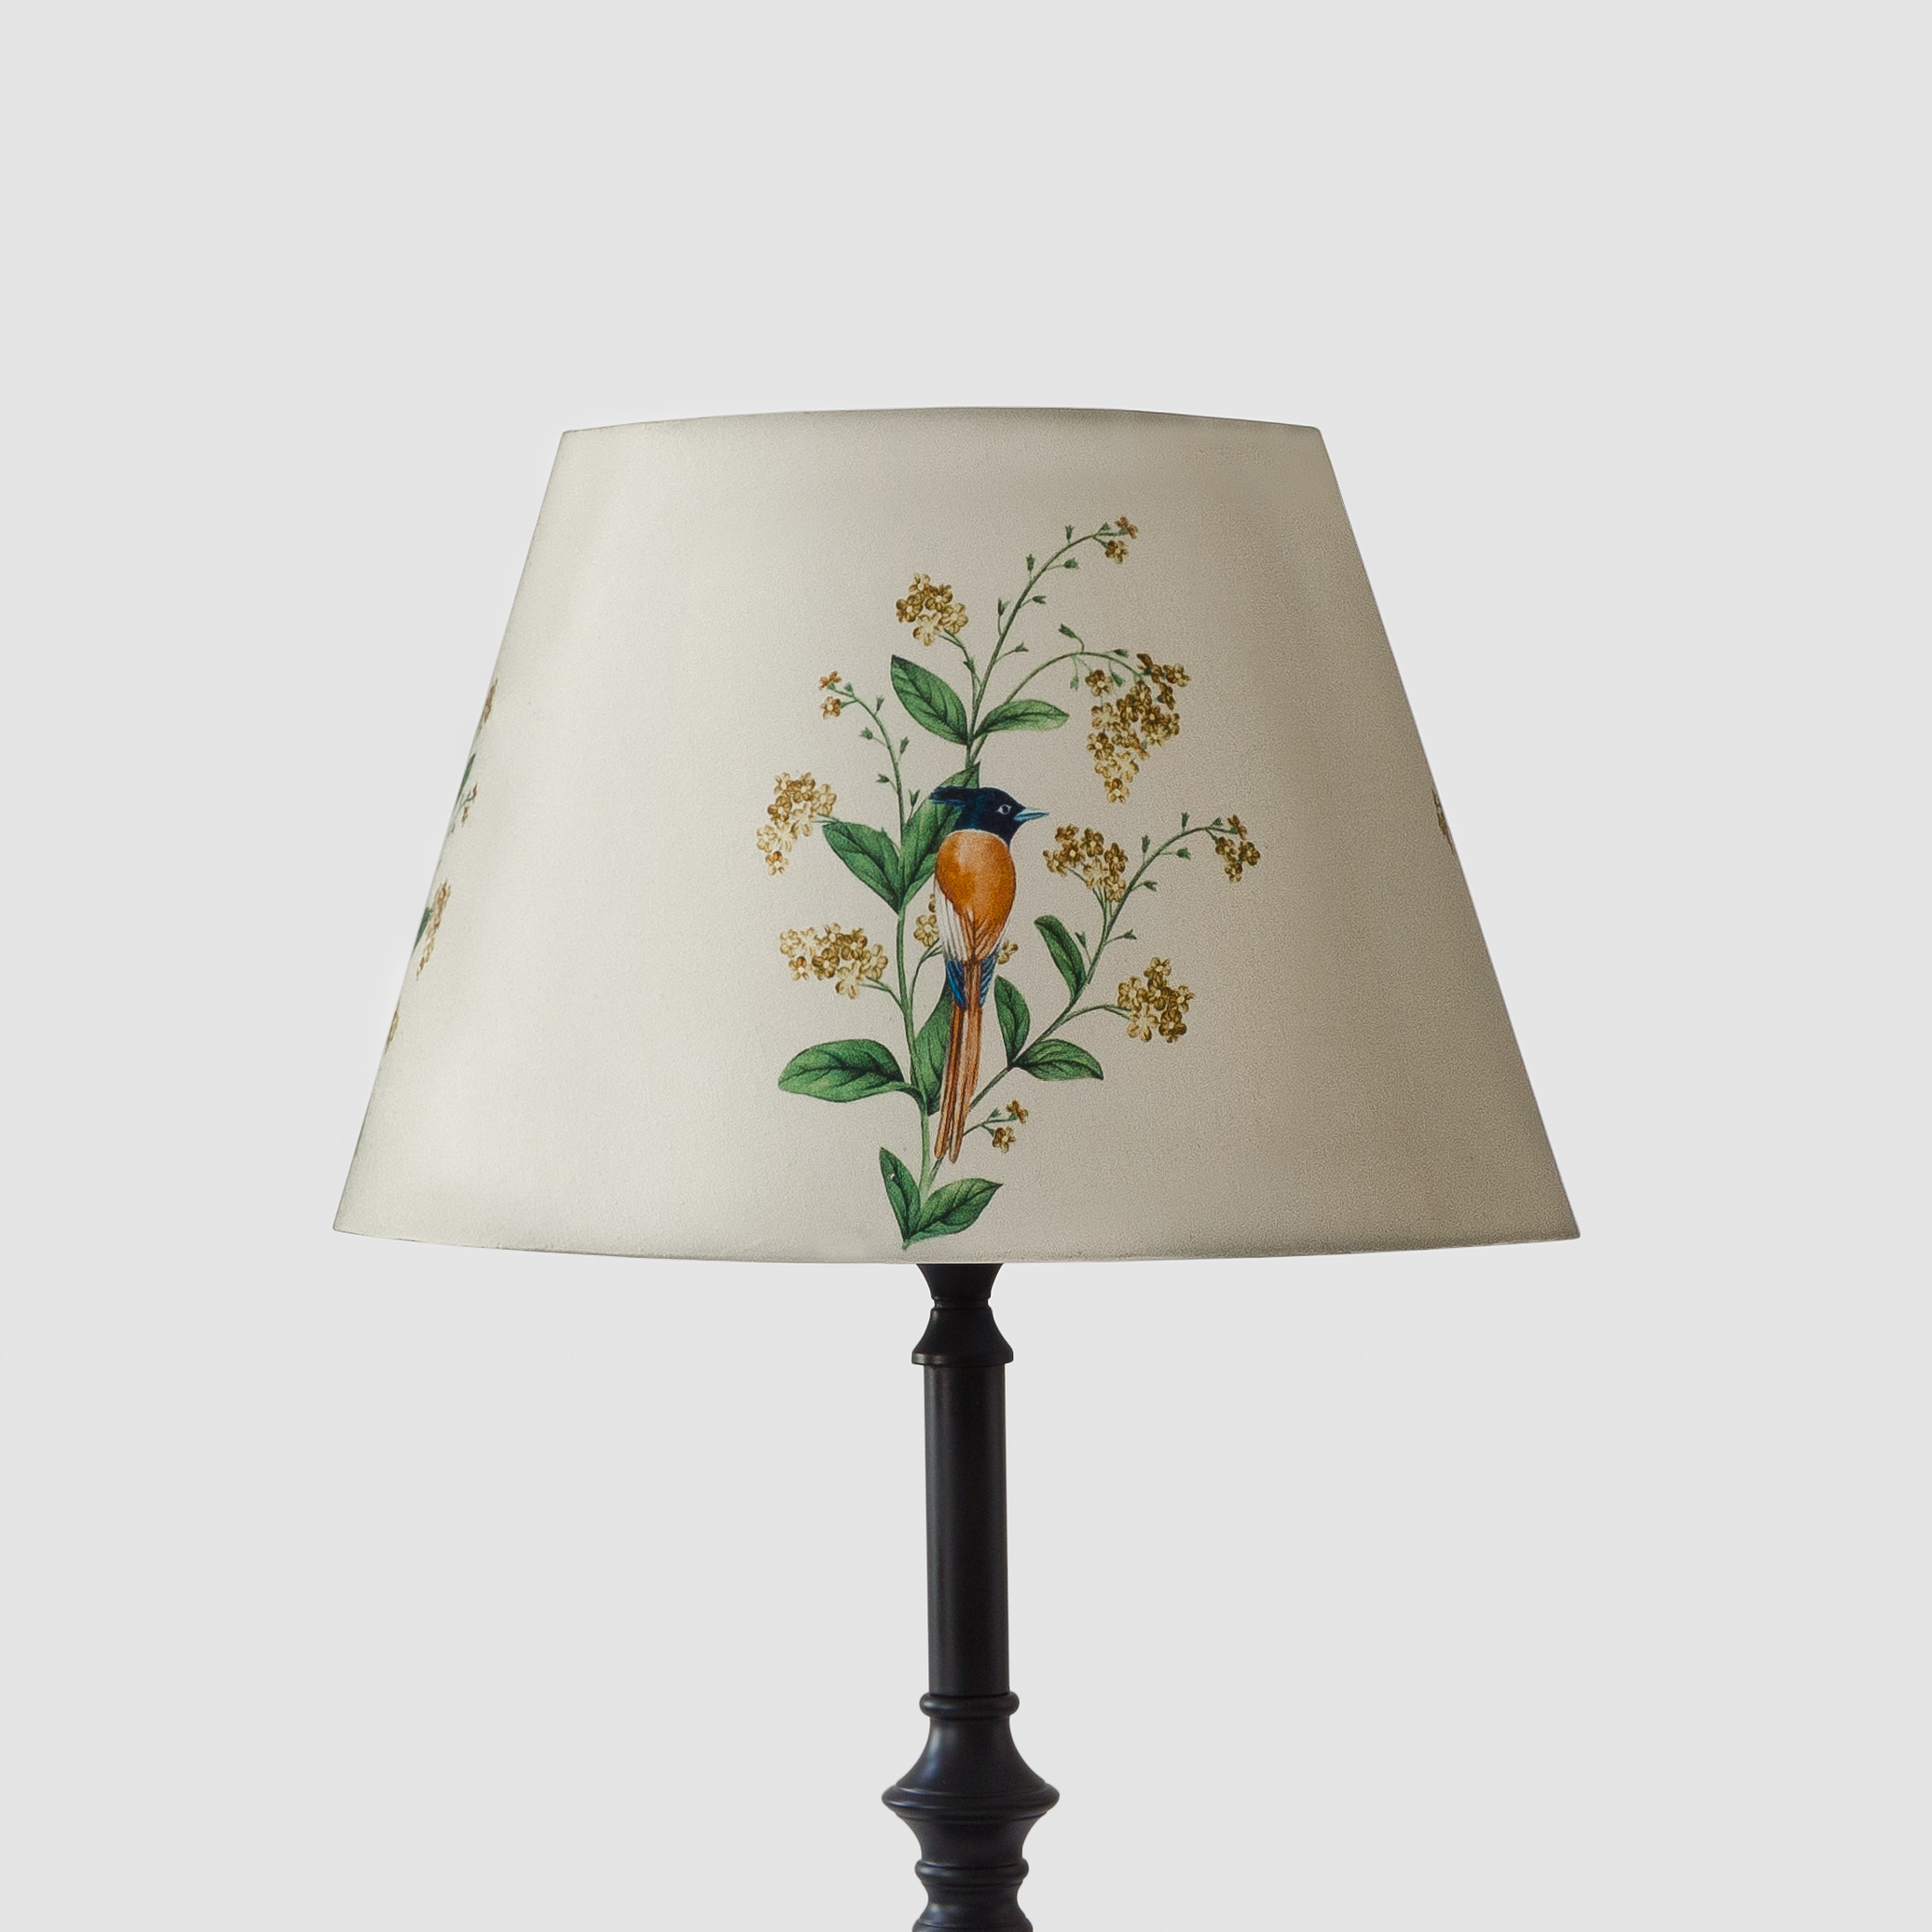 Cottage Bell Lampshade - Large - A Persian Corridor Spring